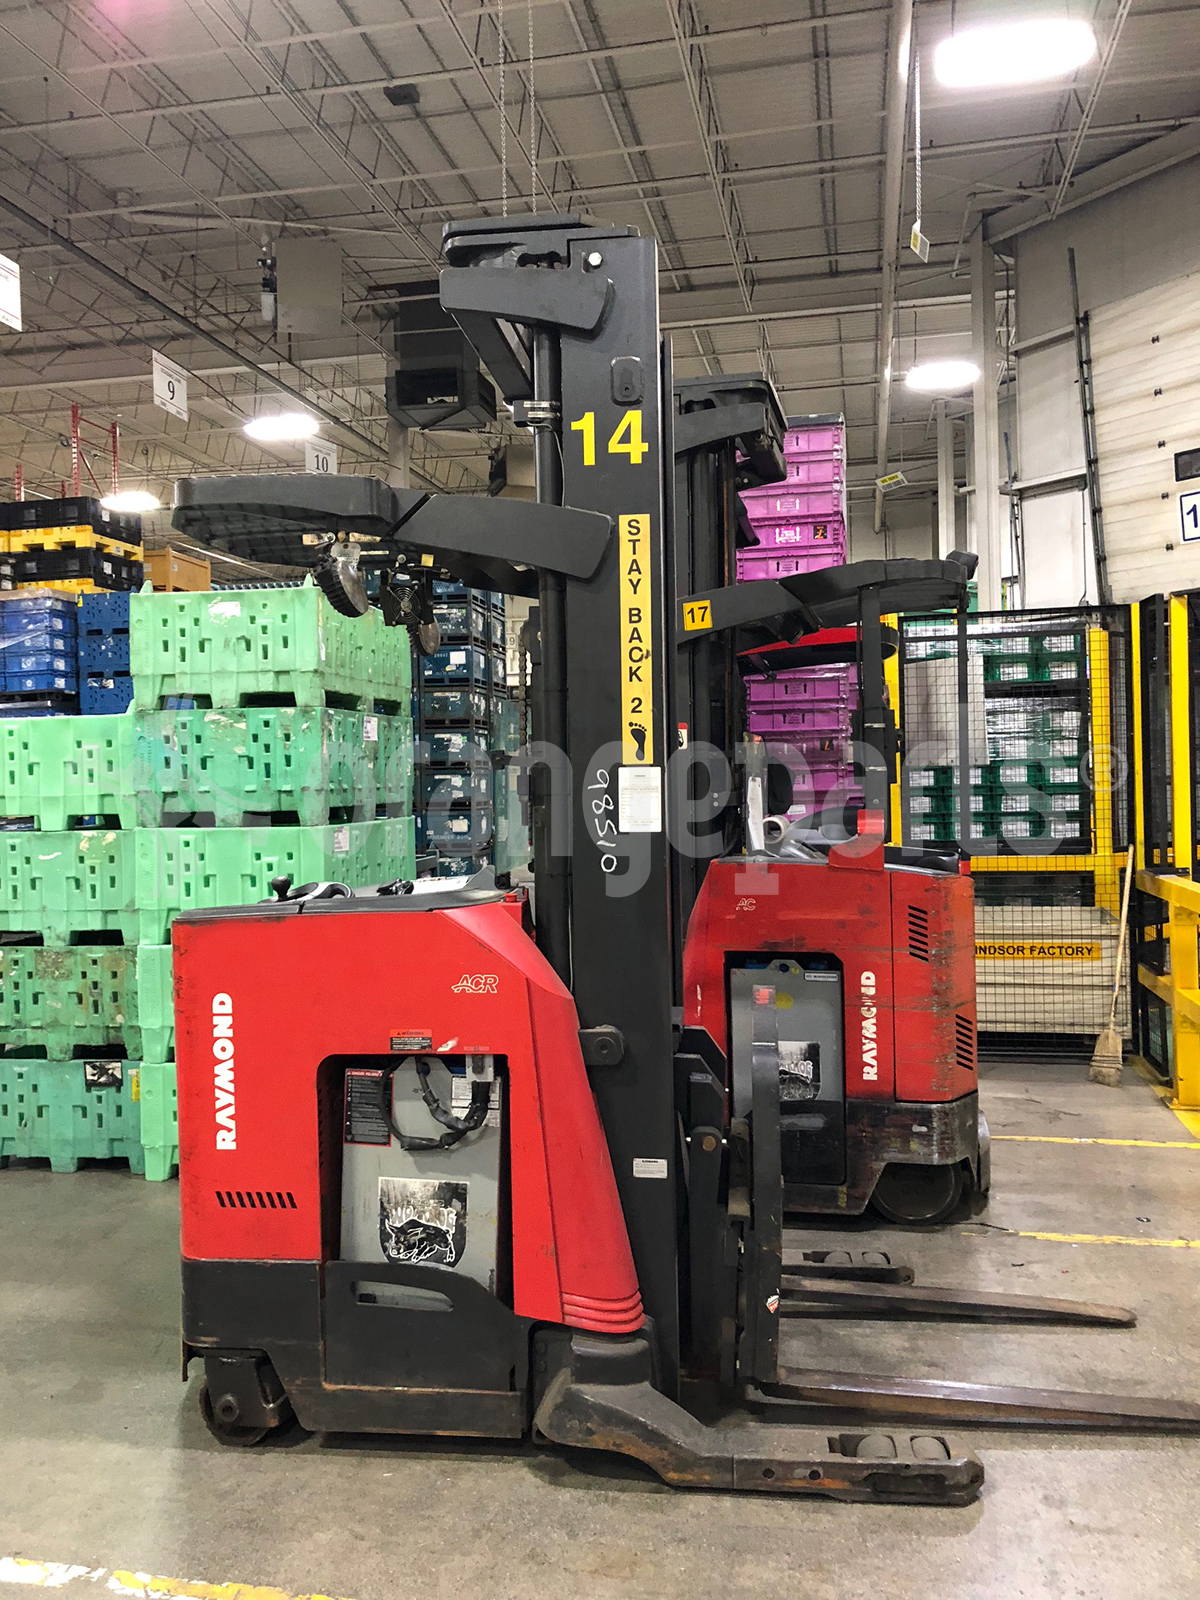 Where do I find my Raymond forklift's serial number?